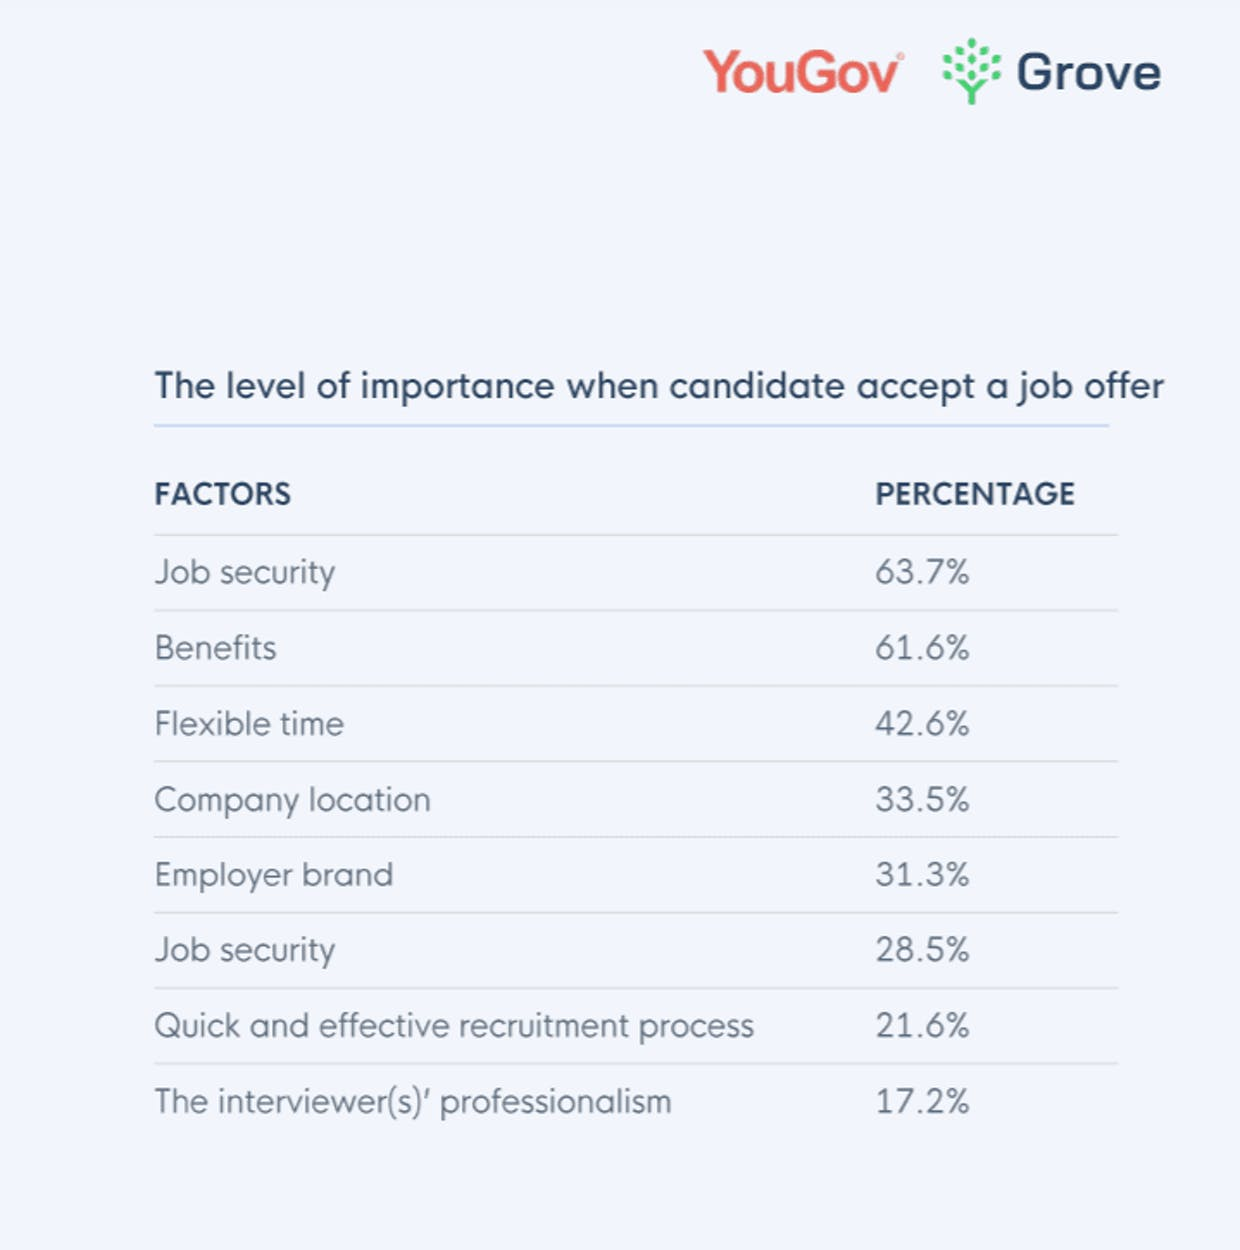 Candidates prioritize job security over financial benefits